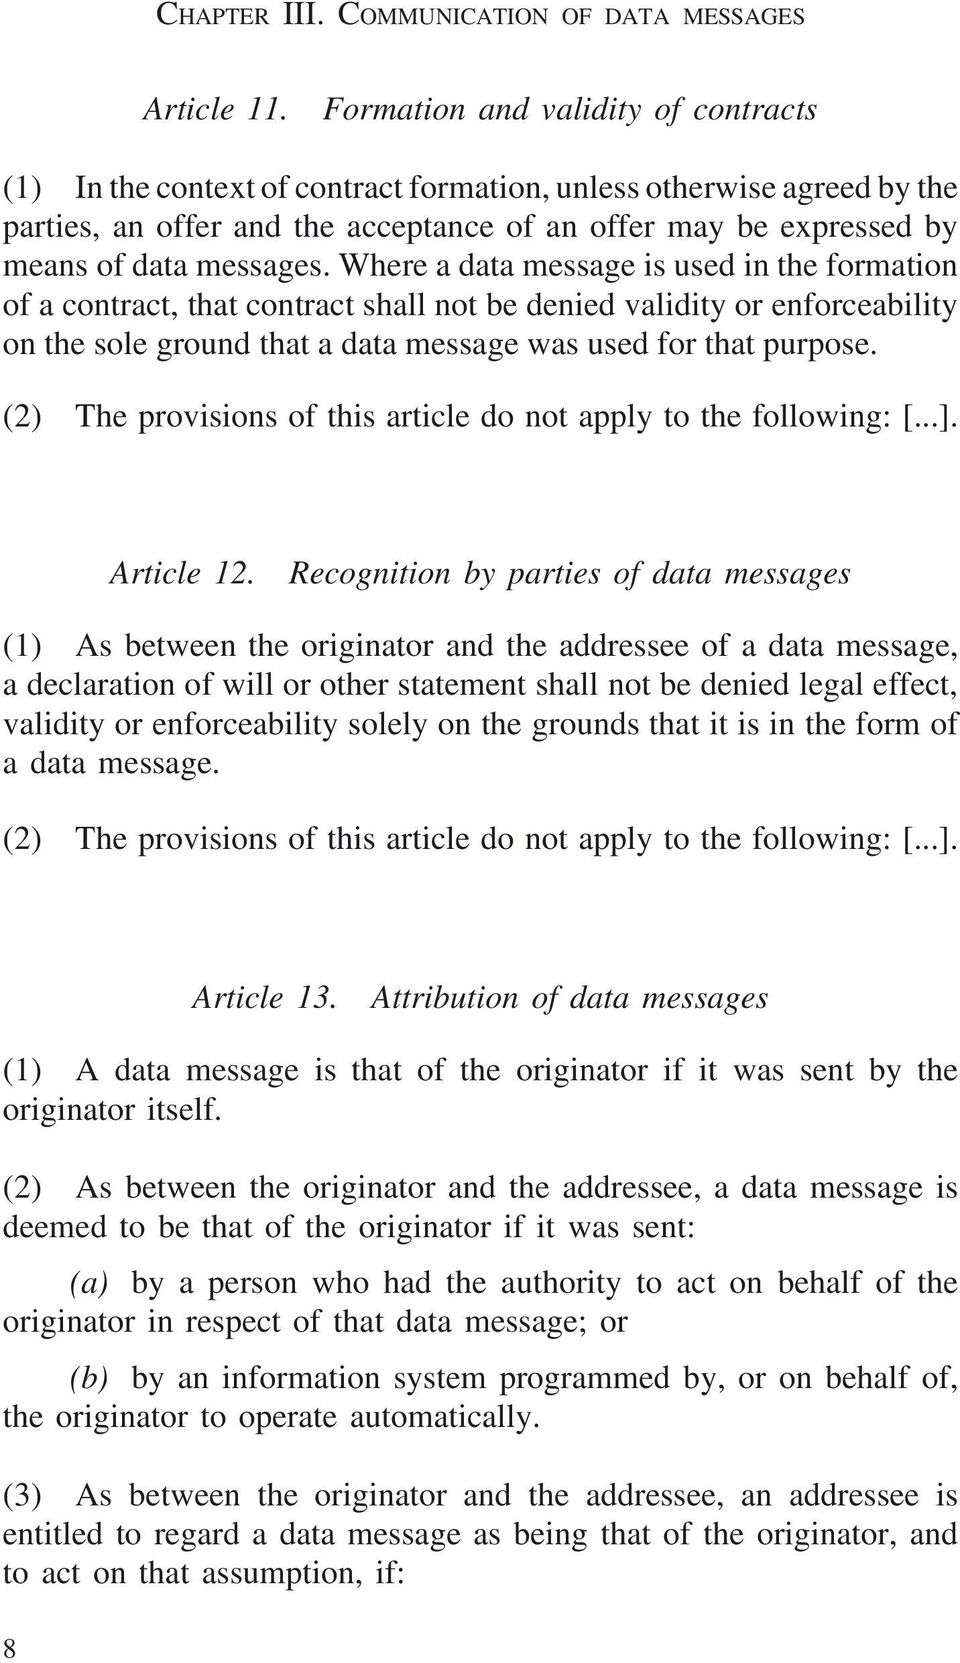 messages. Where a data message is used in the formation of a contract, that contract shall not be denied validity or enforceability on the sole ground that a data message was used for that purpose.